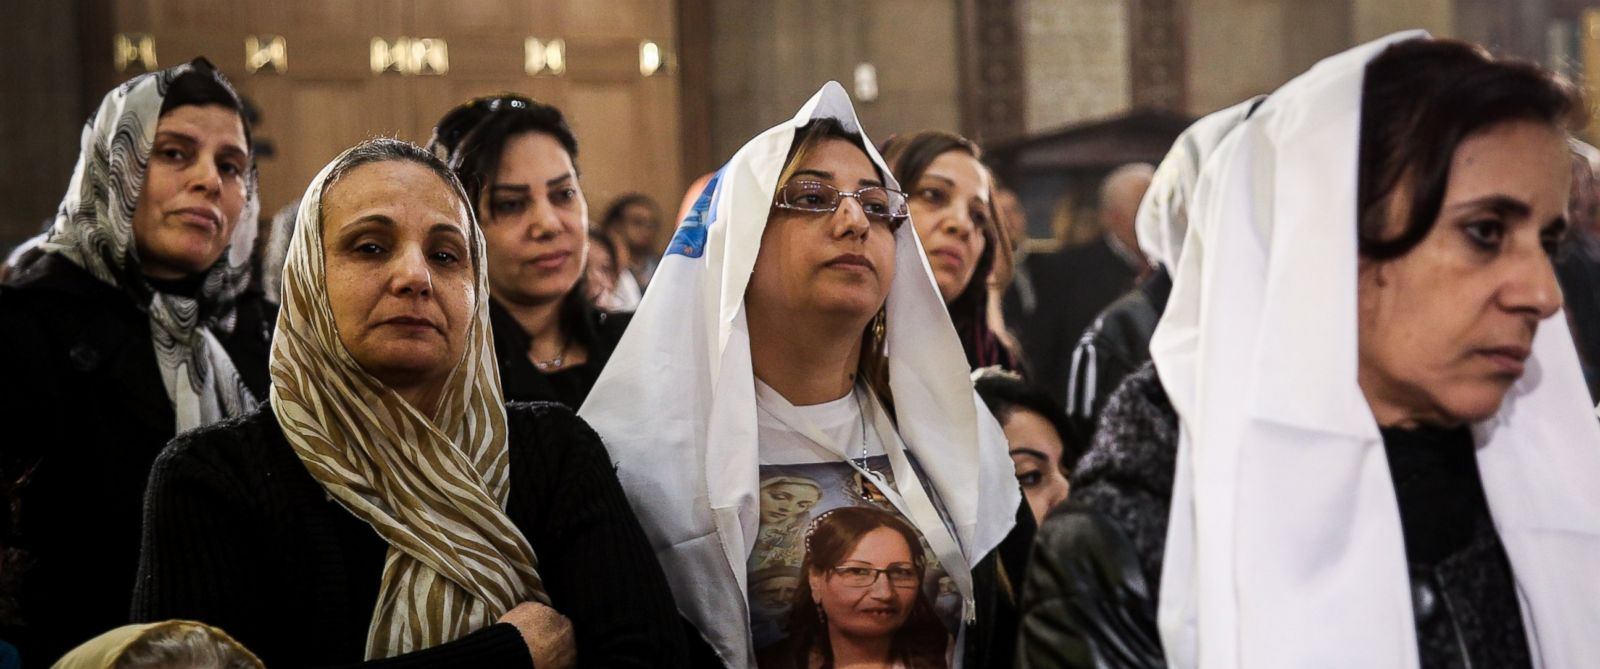 PHOTO: A mass in memory of the victims of the explosion at Saint Peter and Saint Paul Coptic Orthodox Church, is held on the 40th day after the attacks, at the Saint Peter and Saint Paul church in Cairo, Jan. 23, 2017.